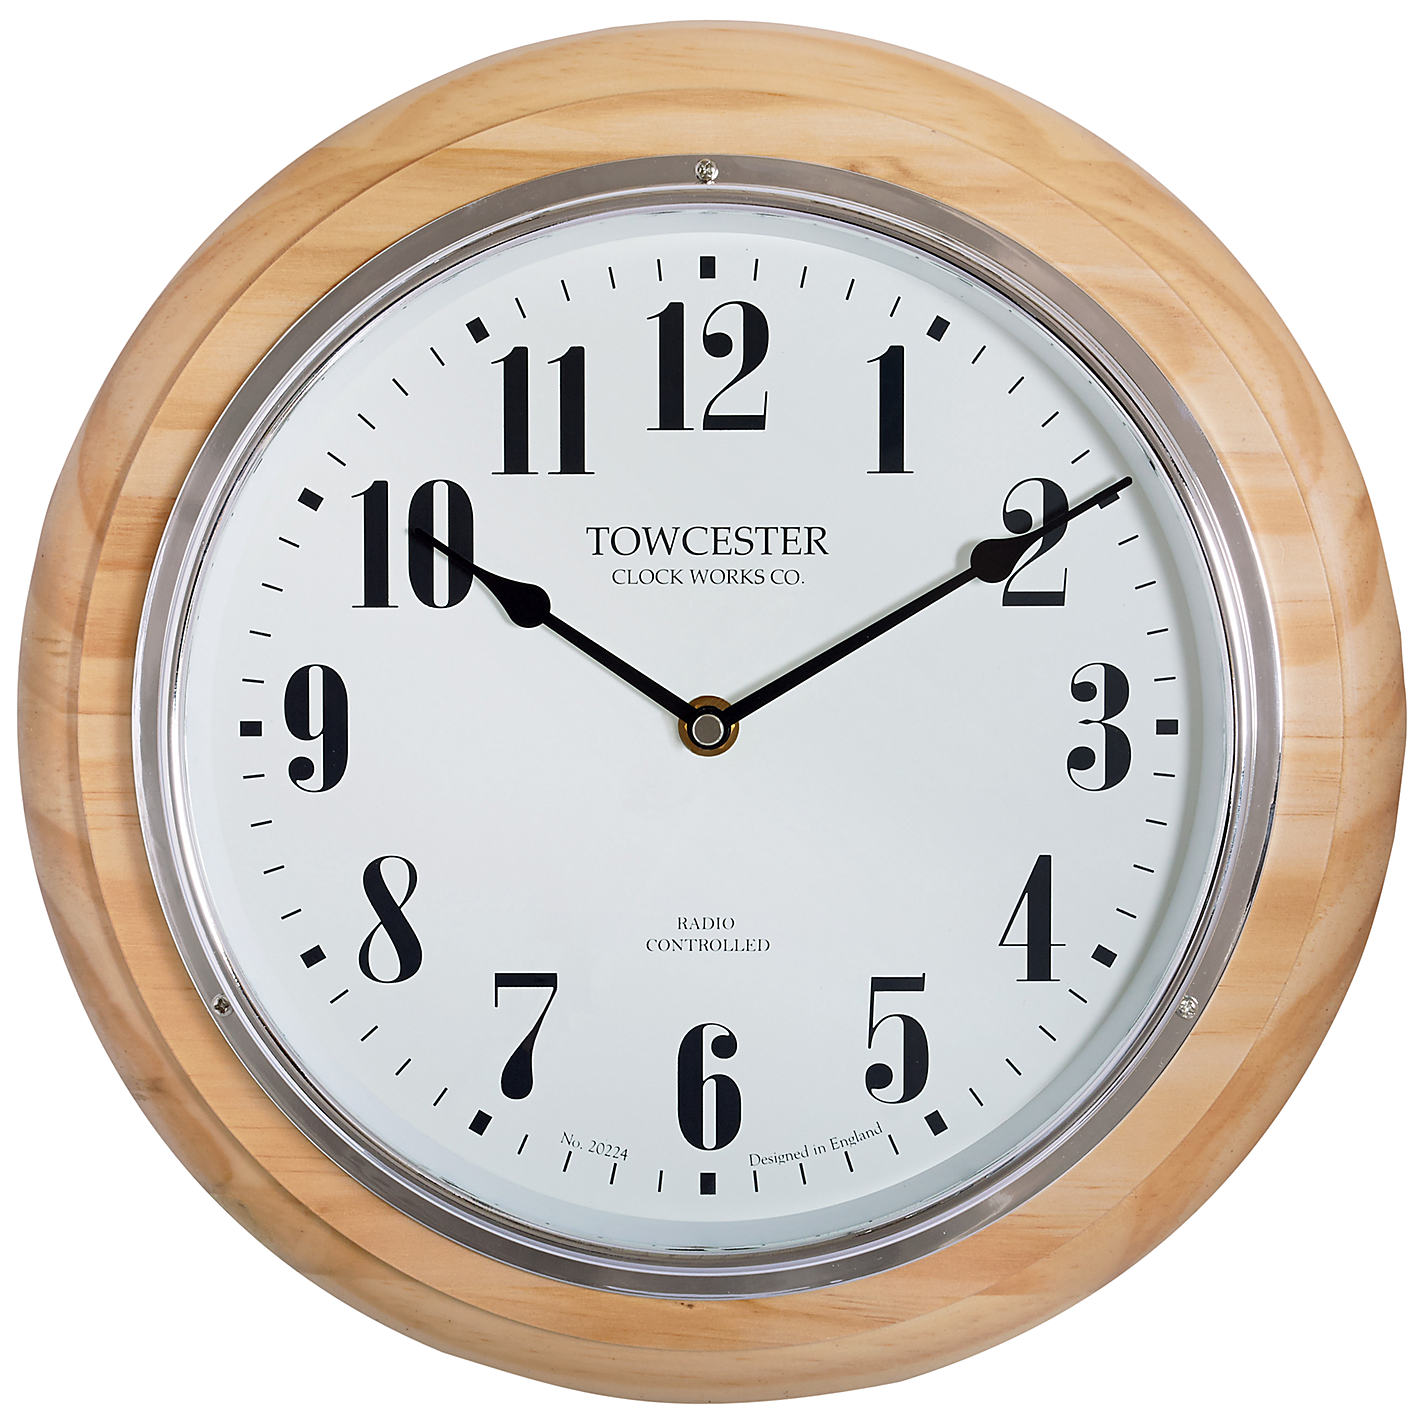 Wall clocks radio controlled choice image home wall decoration ideas wall clocks radio controlled images home wall decoration ideas wall clocks radio controlled image collections home amipublicfo Image collections